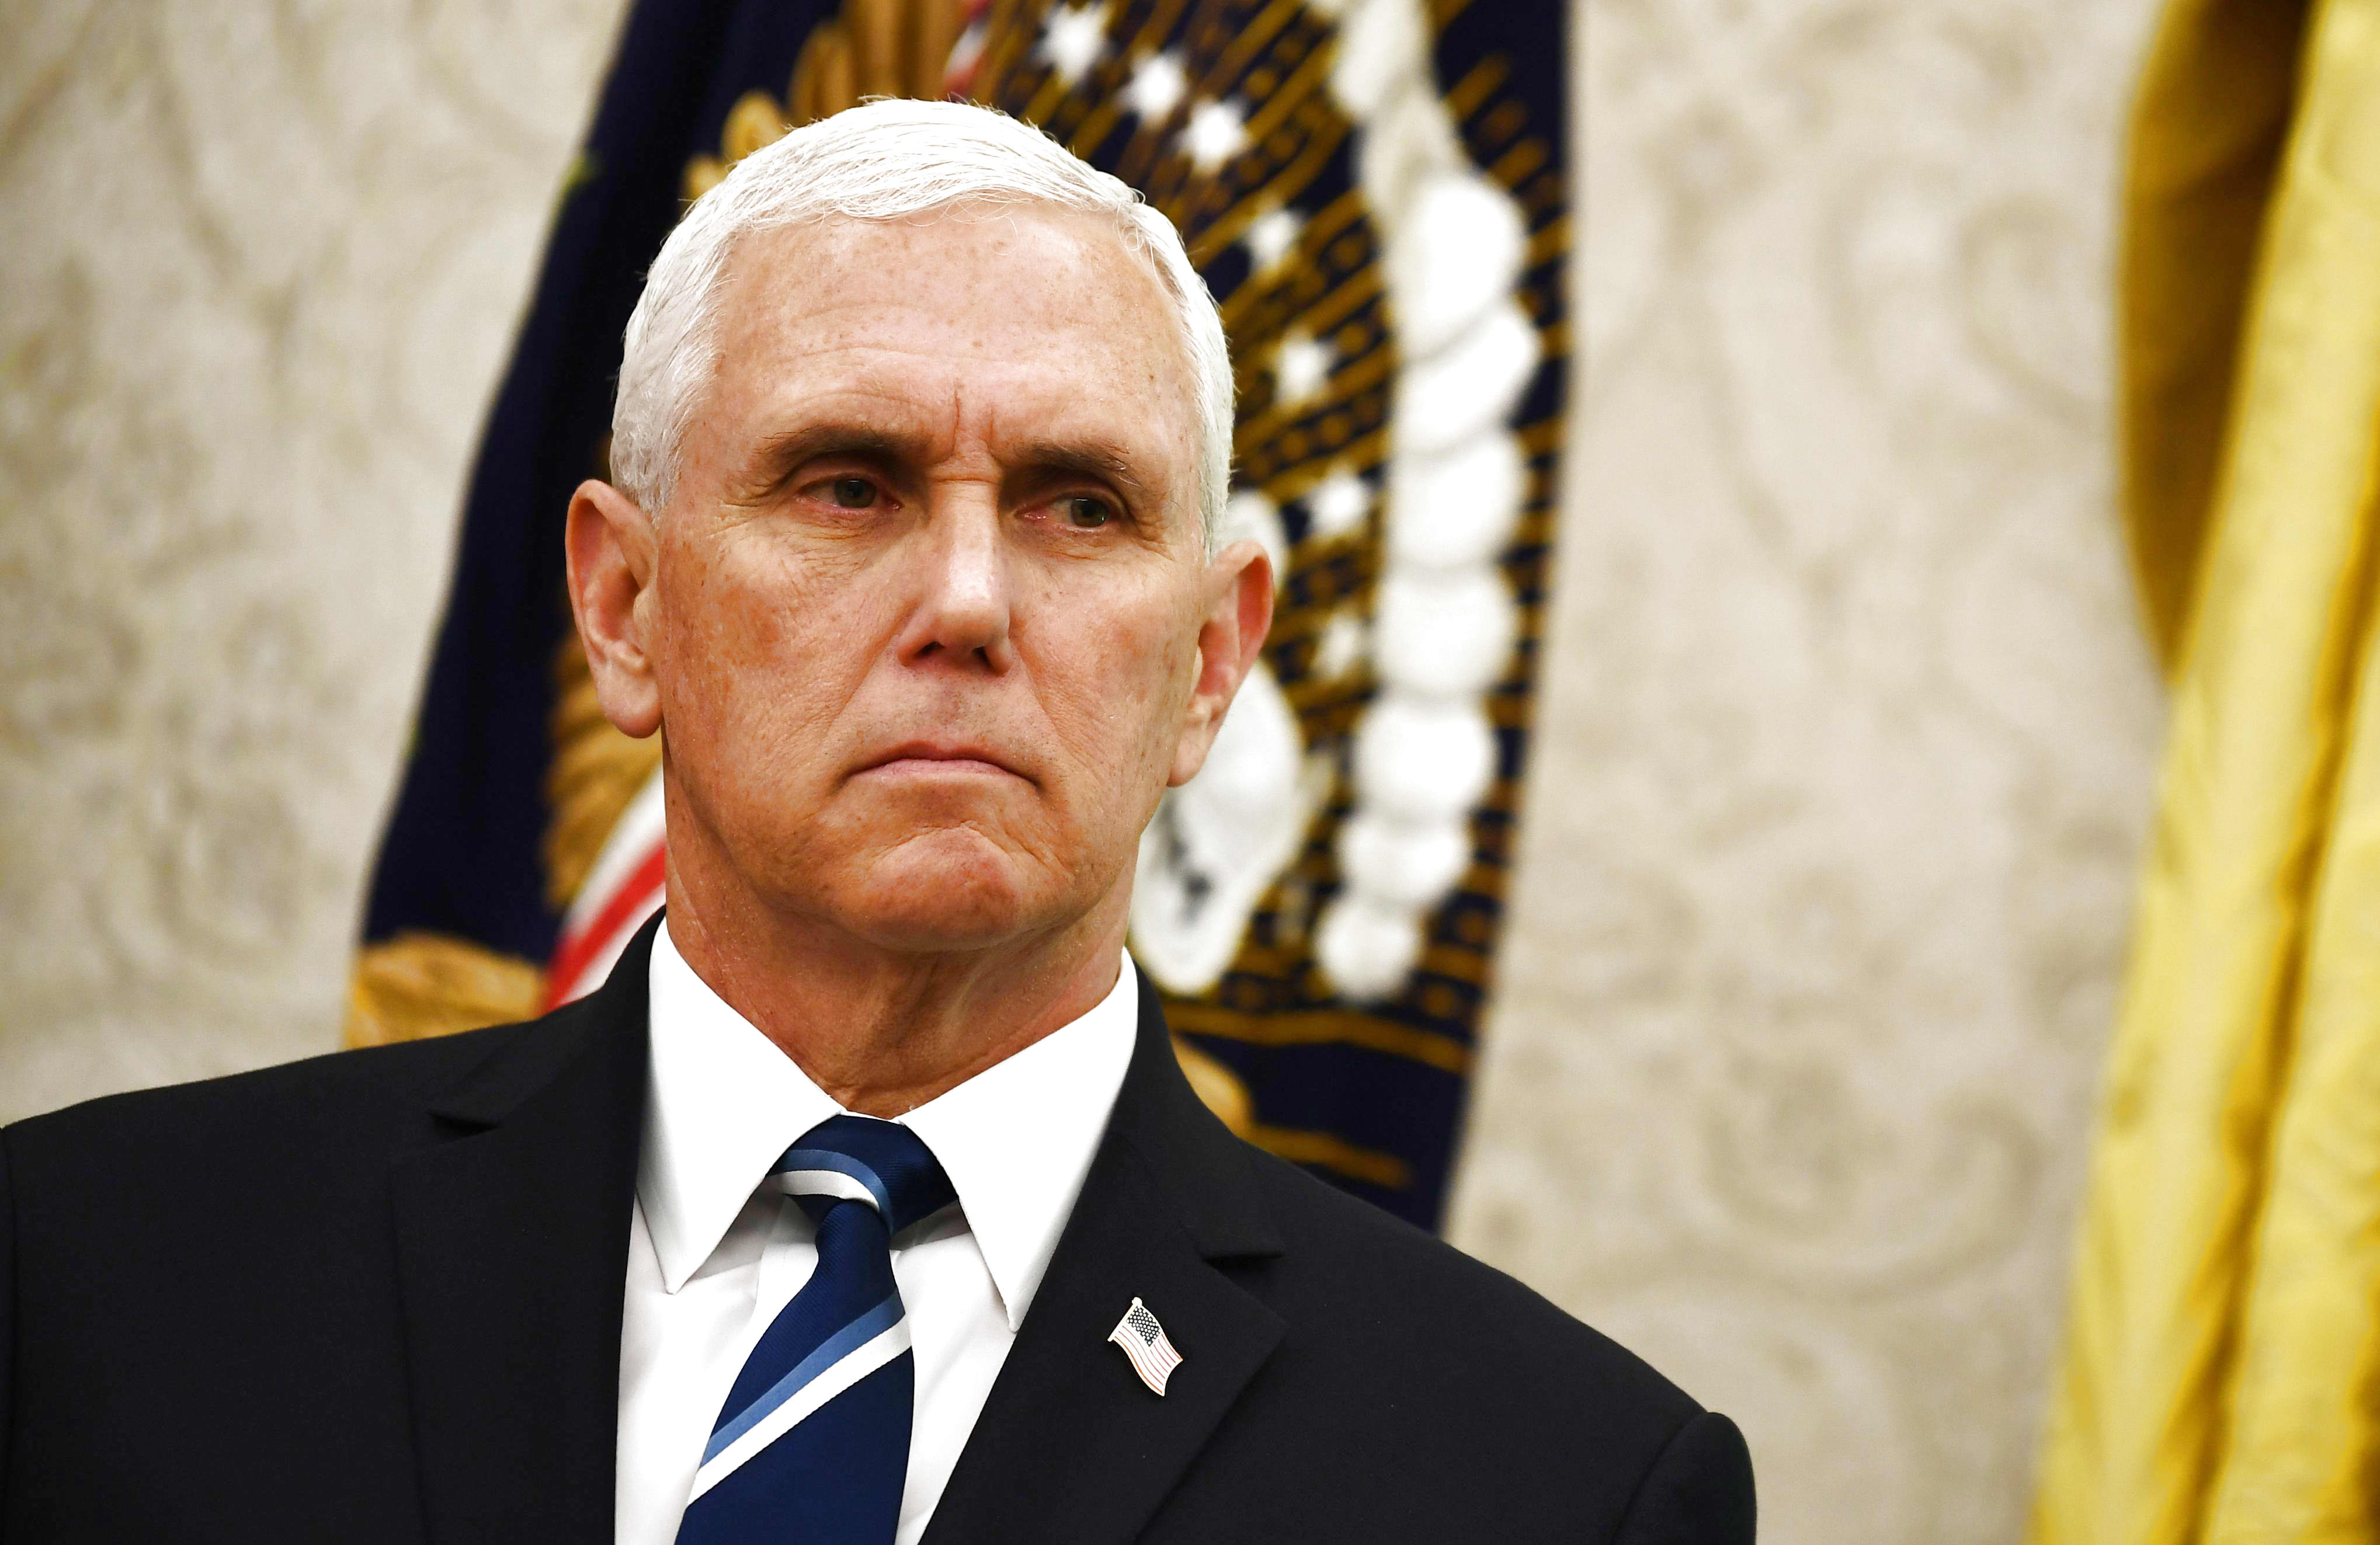 Pence donors, allies helped finance vice president's legal defense fund for Mueller probe